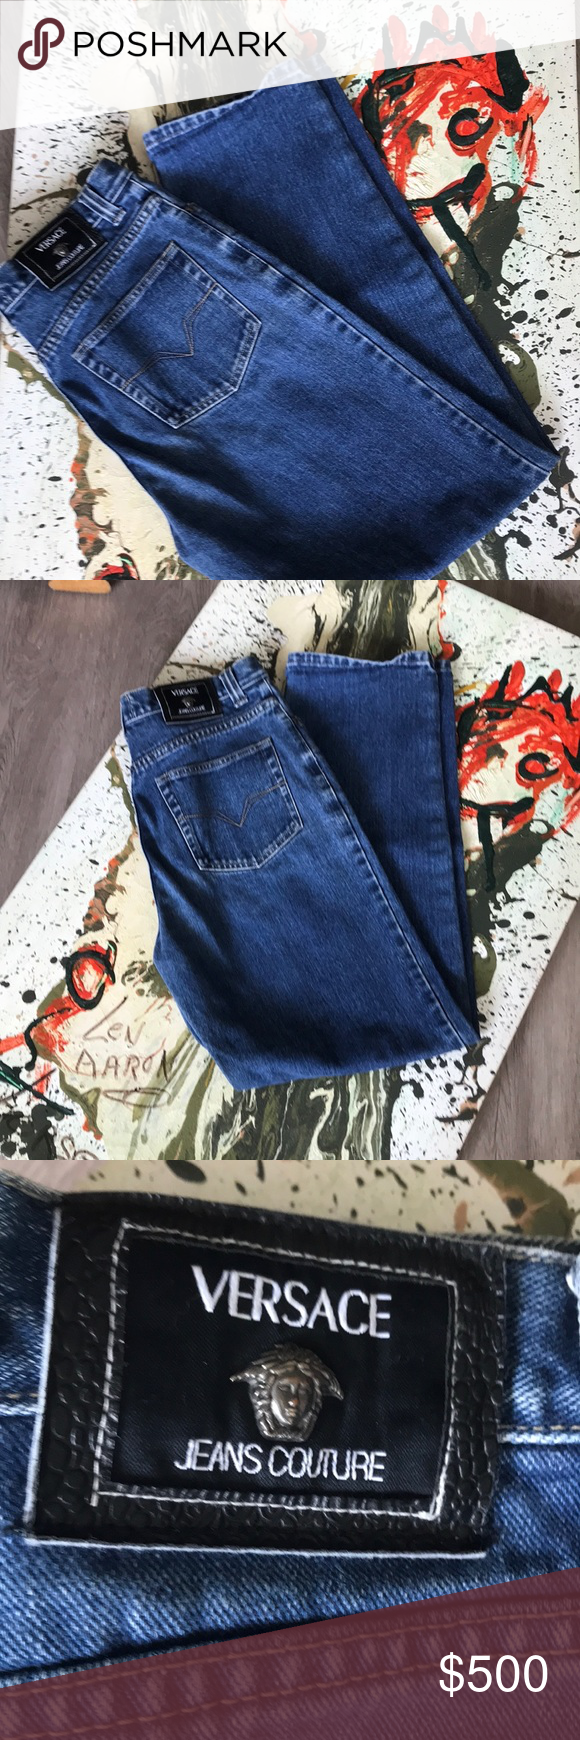 Spotted while shopping on Poshmark  VERSACE authentic jeans from Neiman  Marcus 32 46.!  poshmark  fashion  shopping  style  Versace Jeans Couture   Other ce41e4d93d